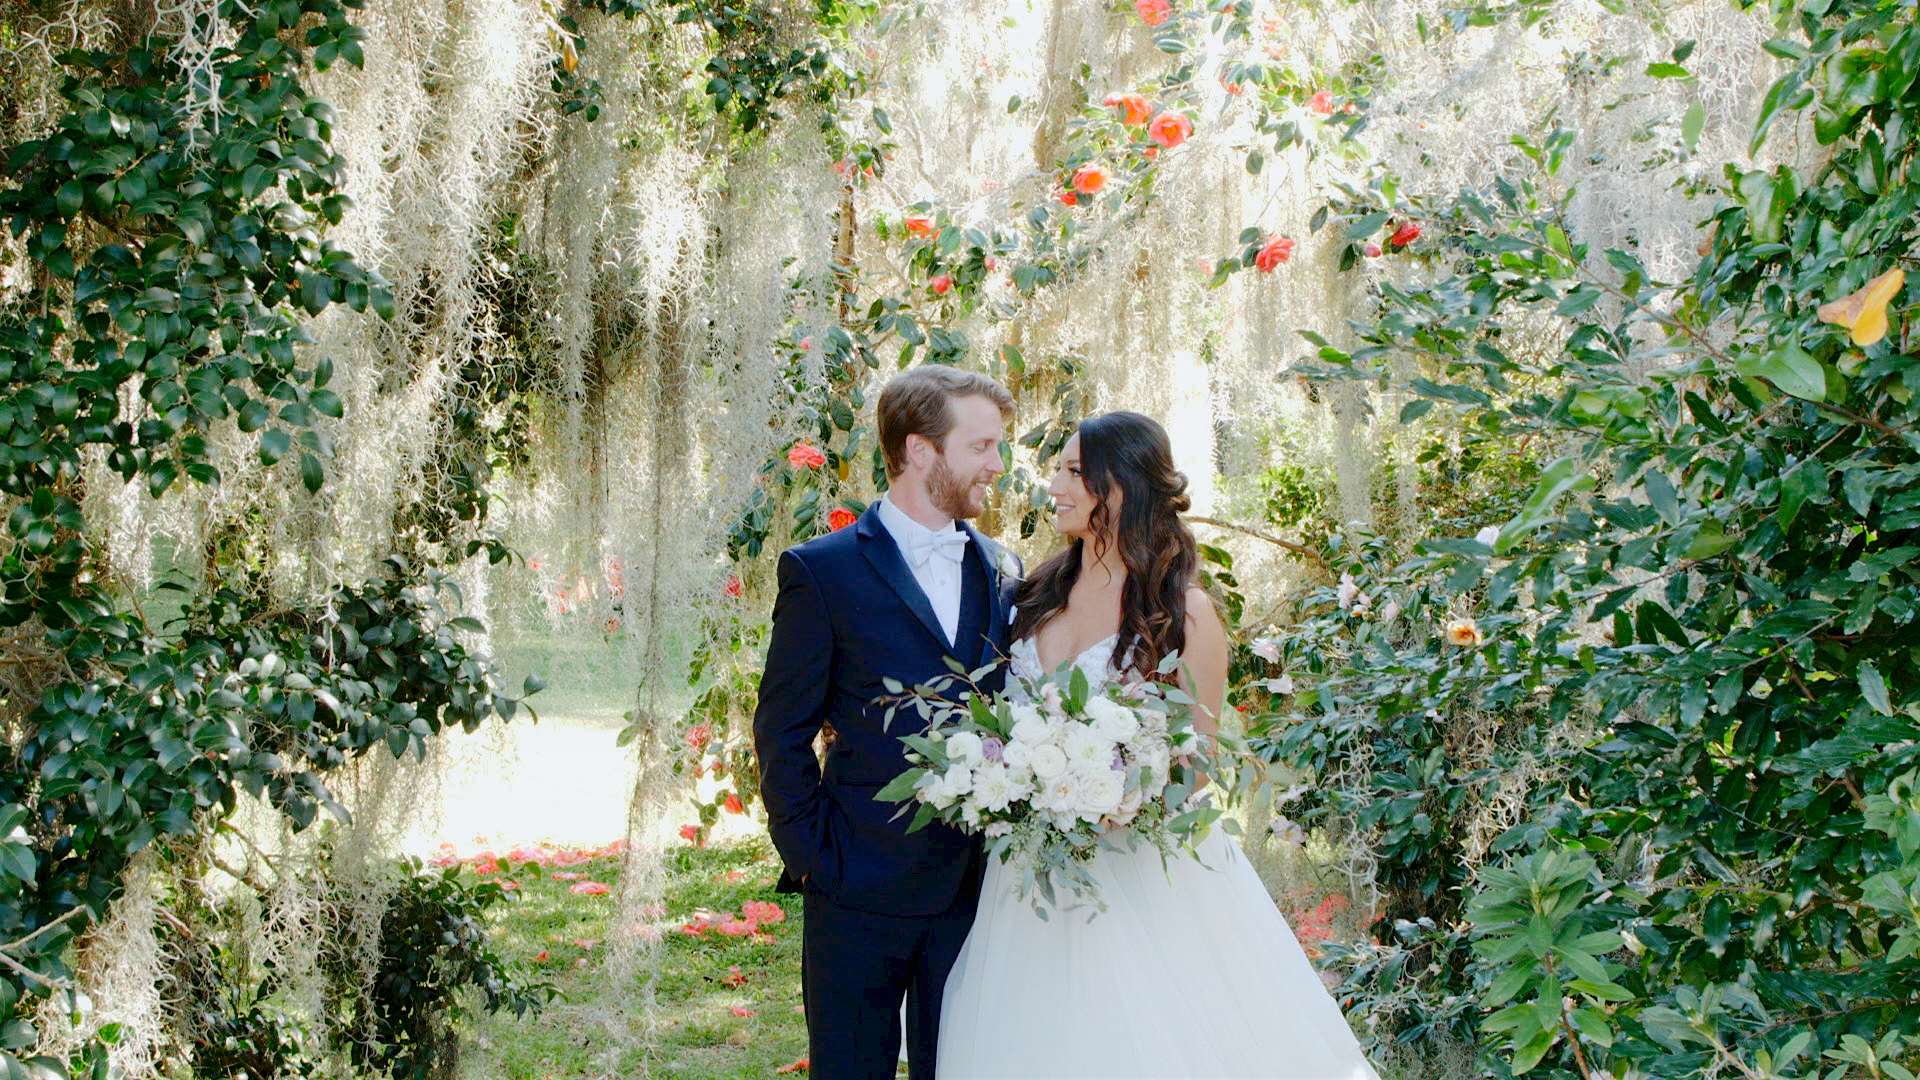 Jenny + Michael | Charleston, South Carolina | The Legare Waring House